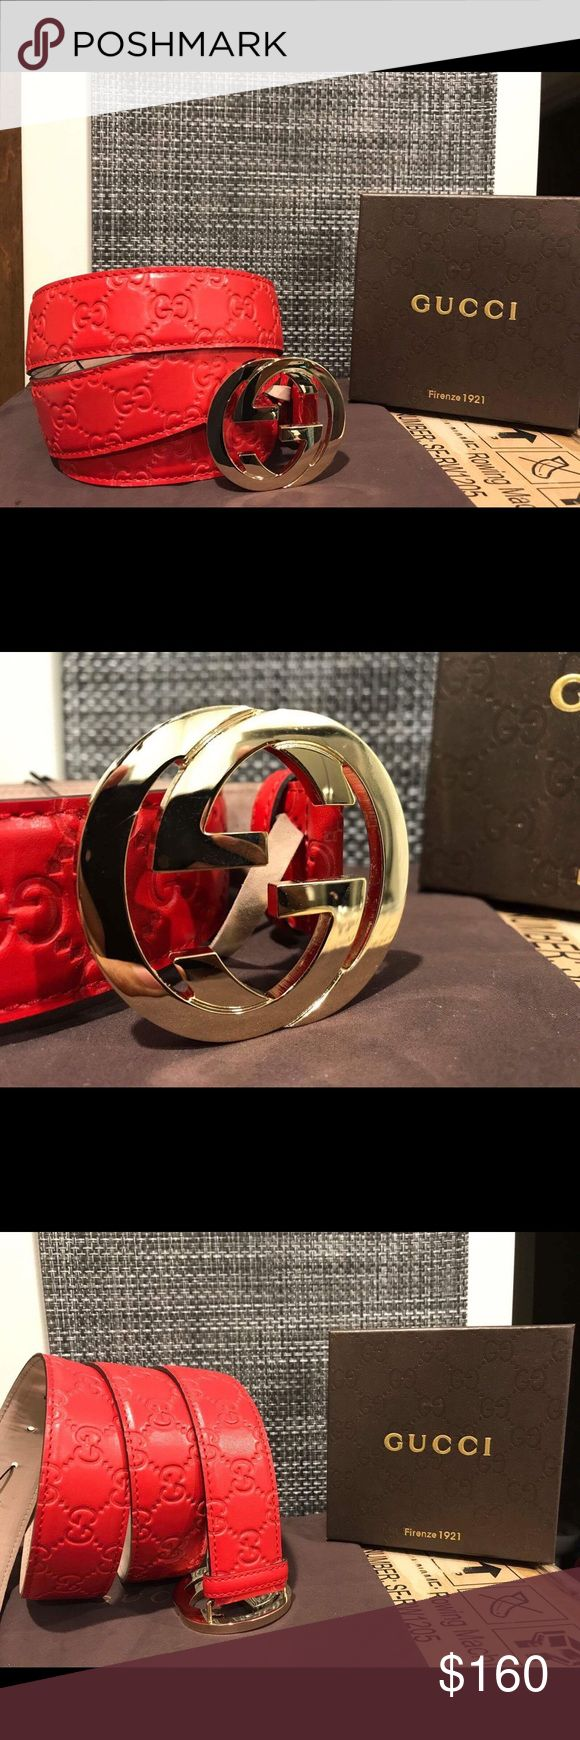 Authentic Mens Red Guccisima Gucci Belt 100% percent authentic mens Gucci belt!  Made in Italy. Comes with box dust bag and tags. Bundles save you money.  Ships in 1-2 business days. Gucci Accessories Belts